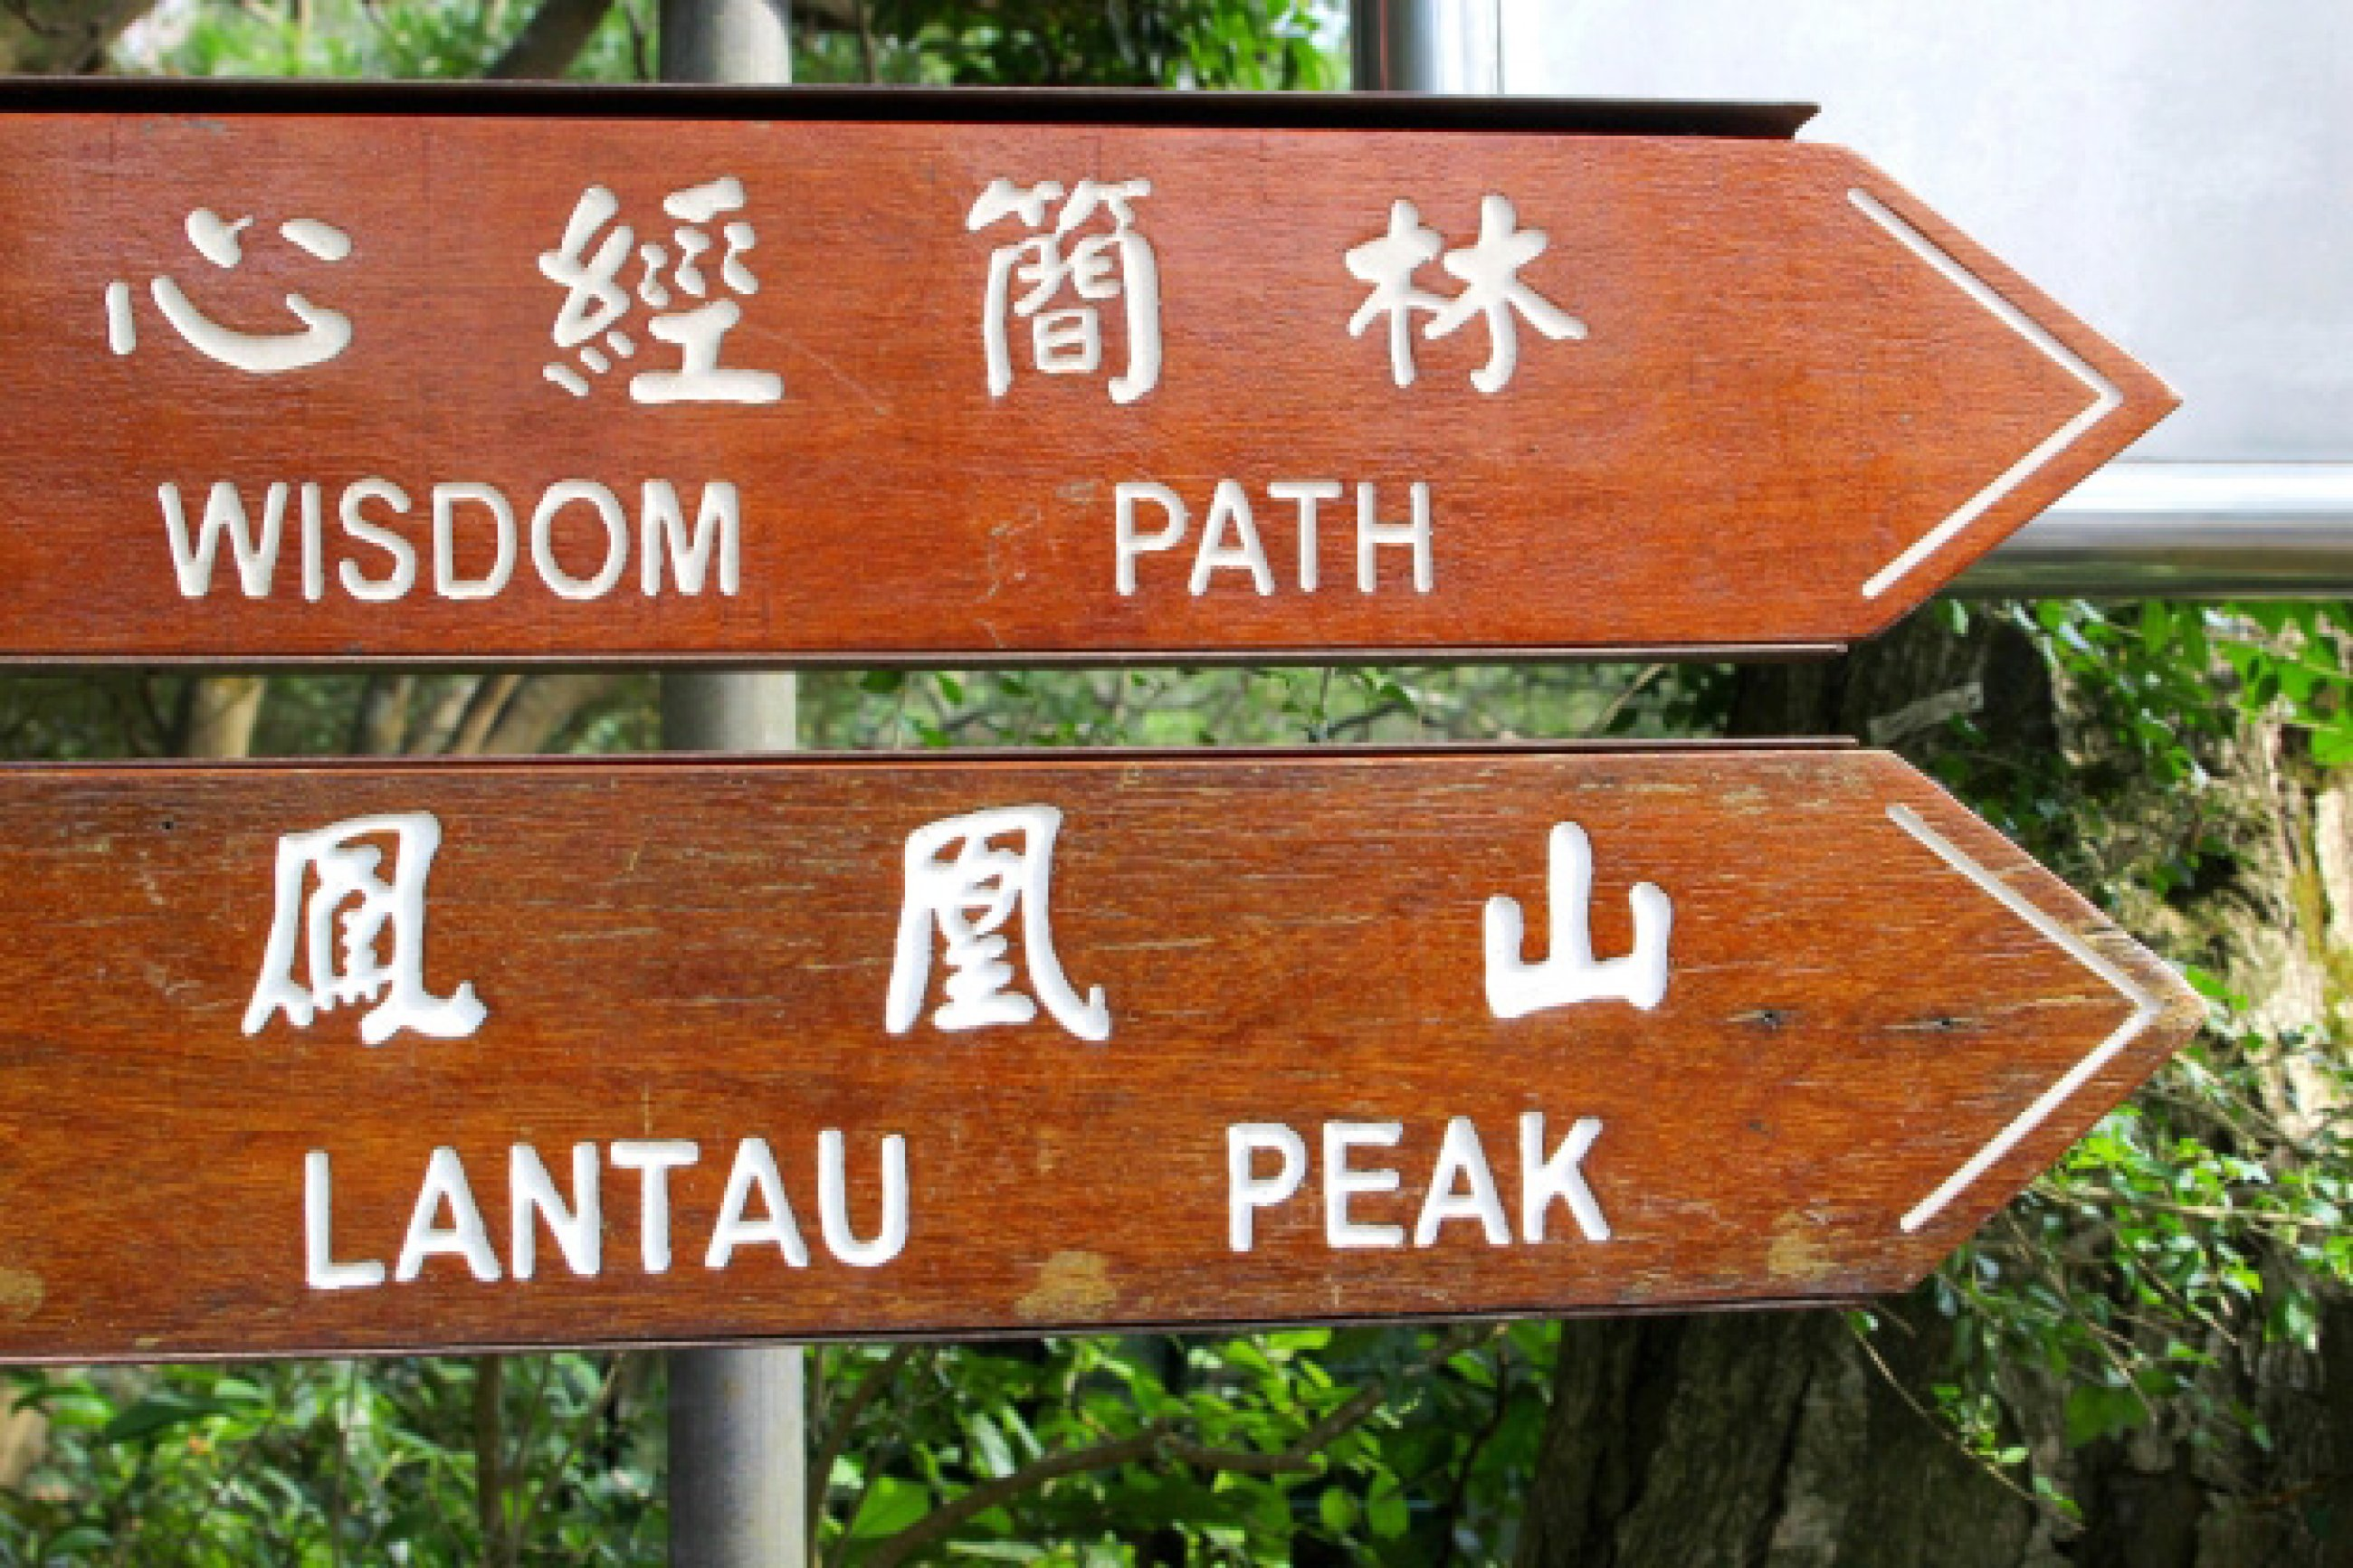 https://bubo.sk/uploads/galleries/7459/dirtectional-sign-boards-with-chinese-characters-for-the-wisdom-path-and-lantau-peak-at-lantau-island-hong-kong..jpg